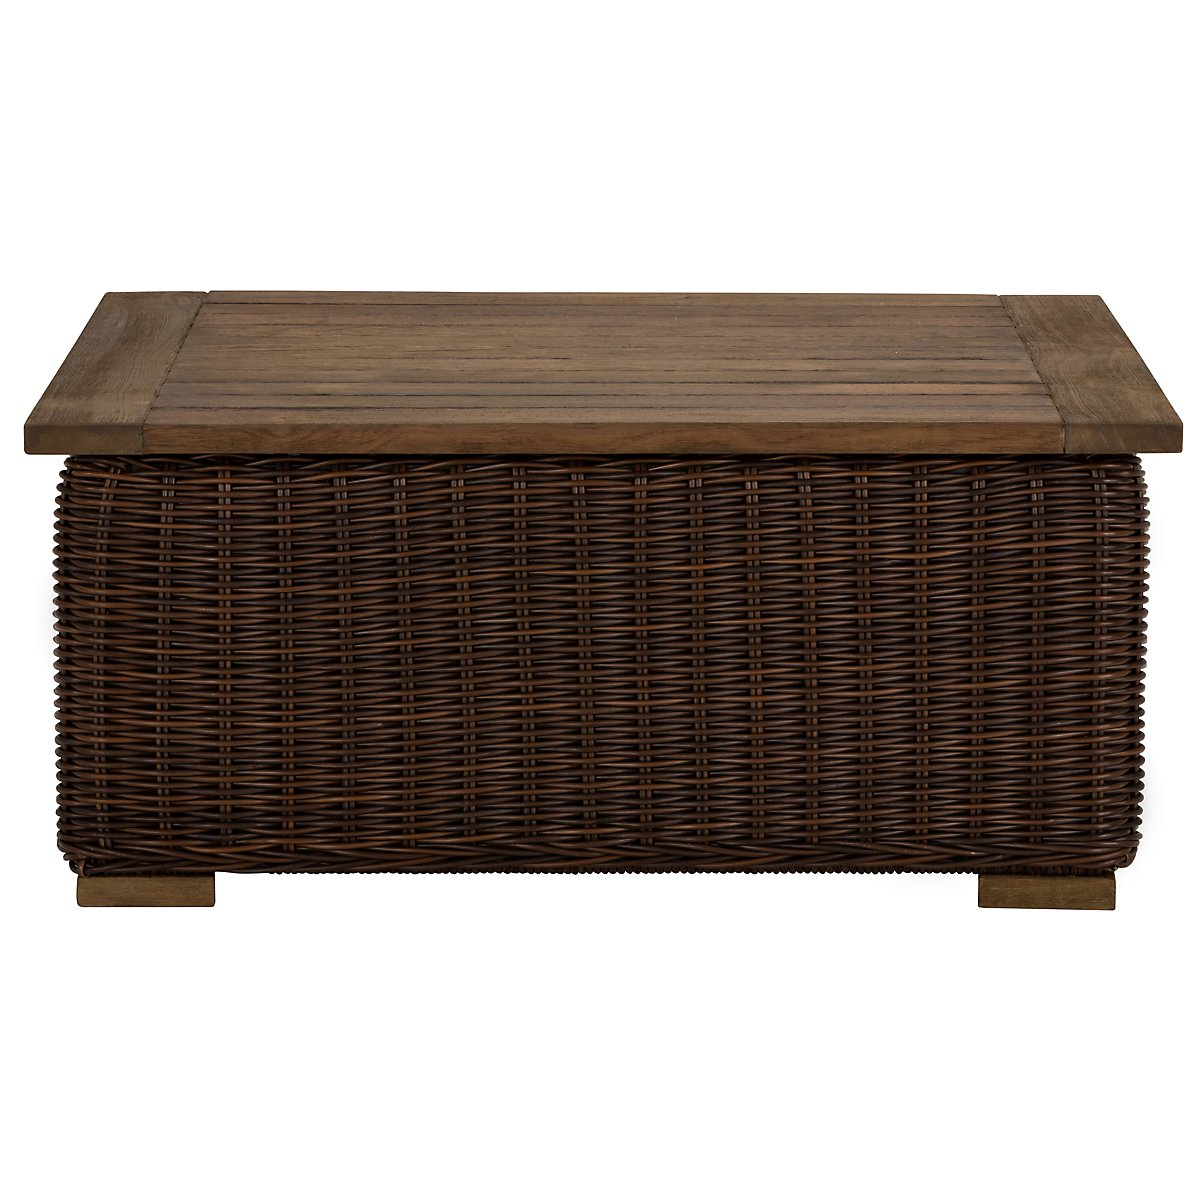 City Furniture Canyon3 Dk Brown Wood Coffee Table